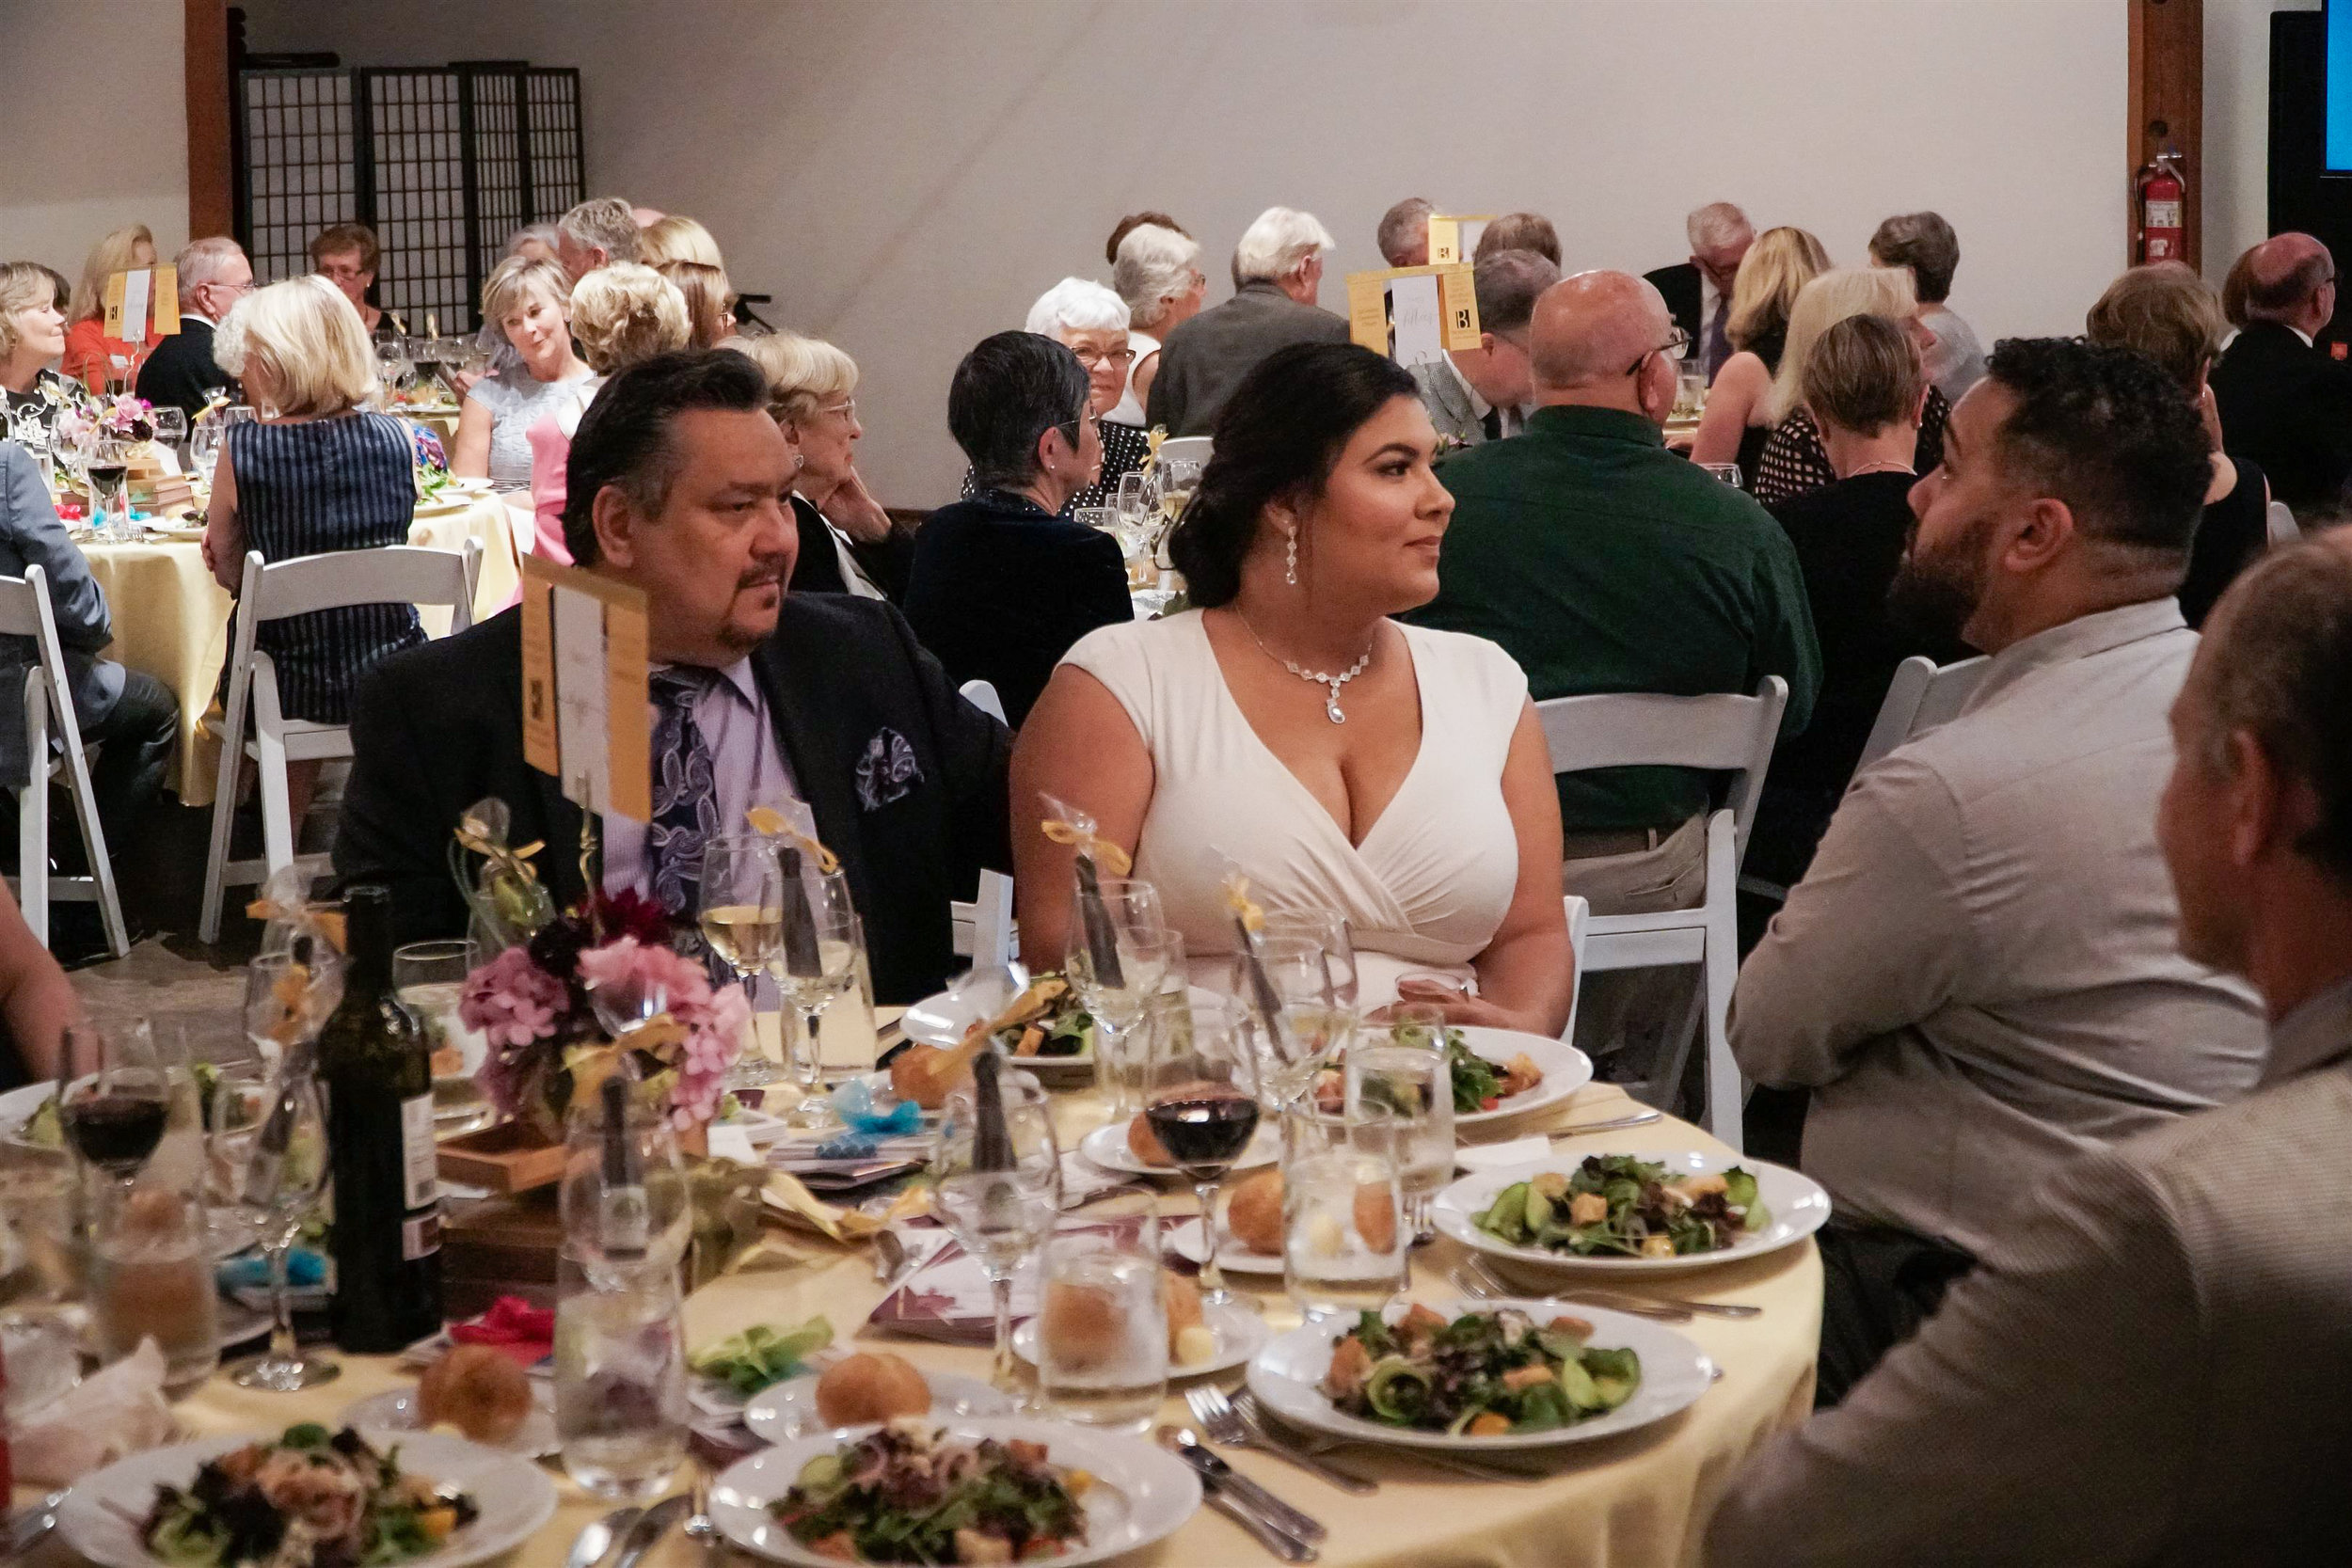 Guests pictured during the Gala dinner